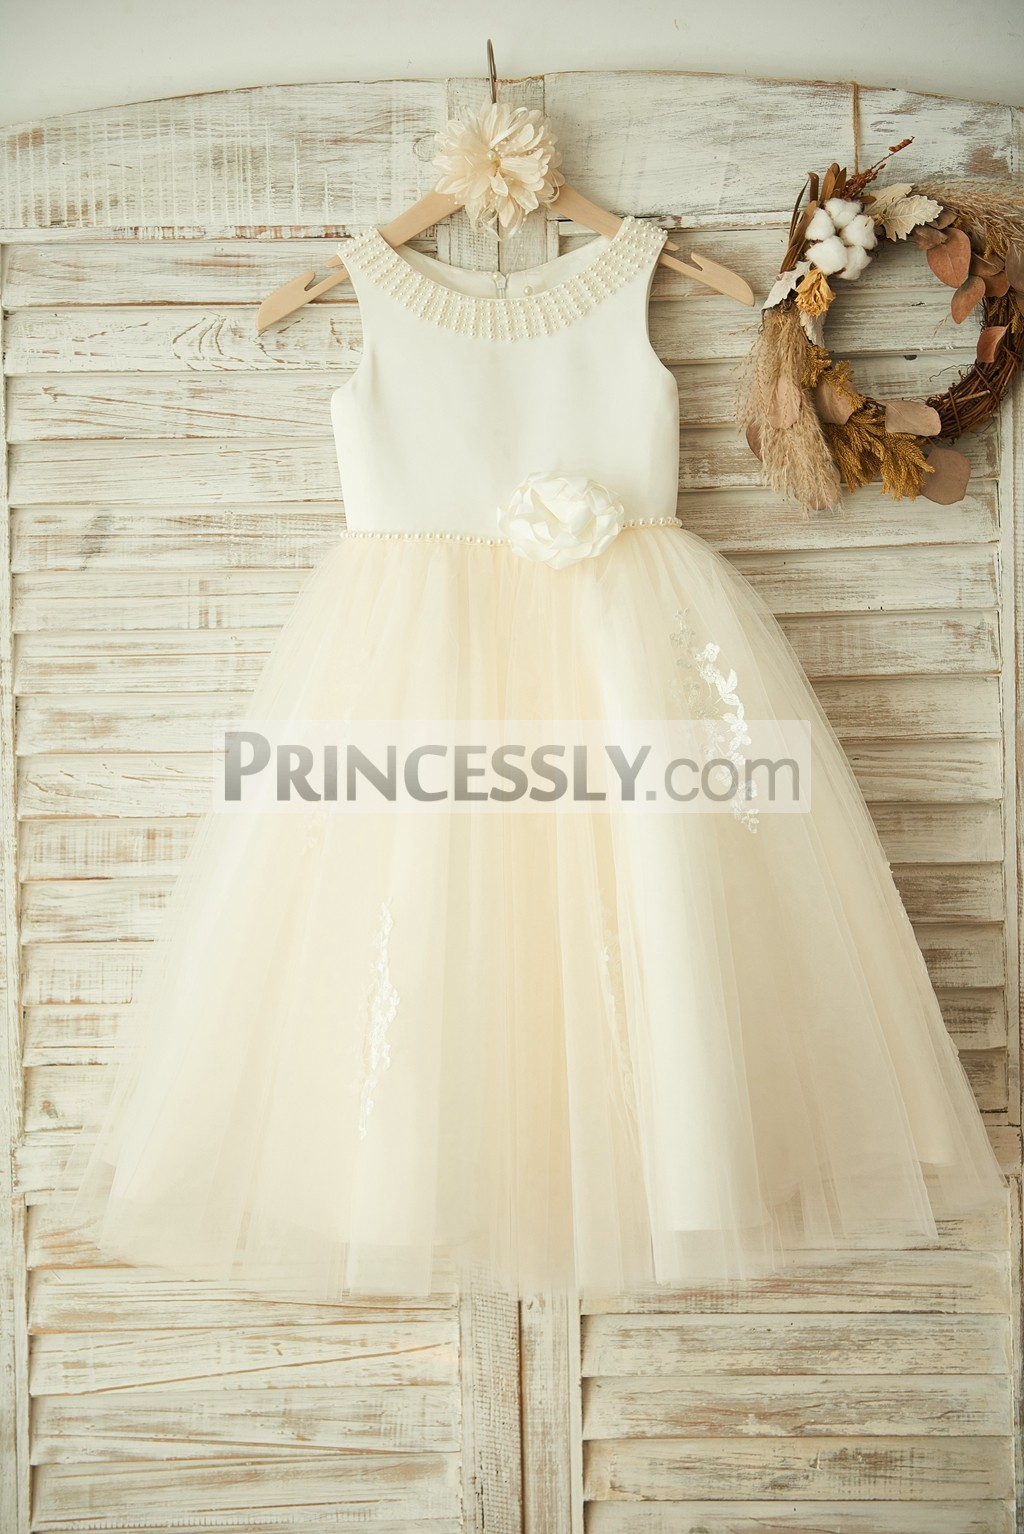 Pearls Flower Ivory Satin Tulle Flower Girl Dress with Lace Appliques